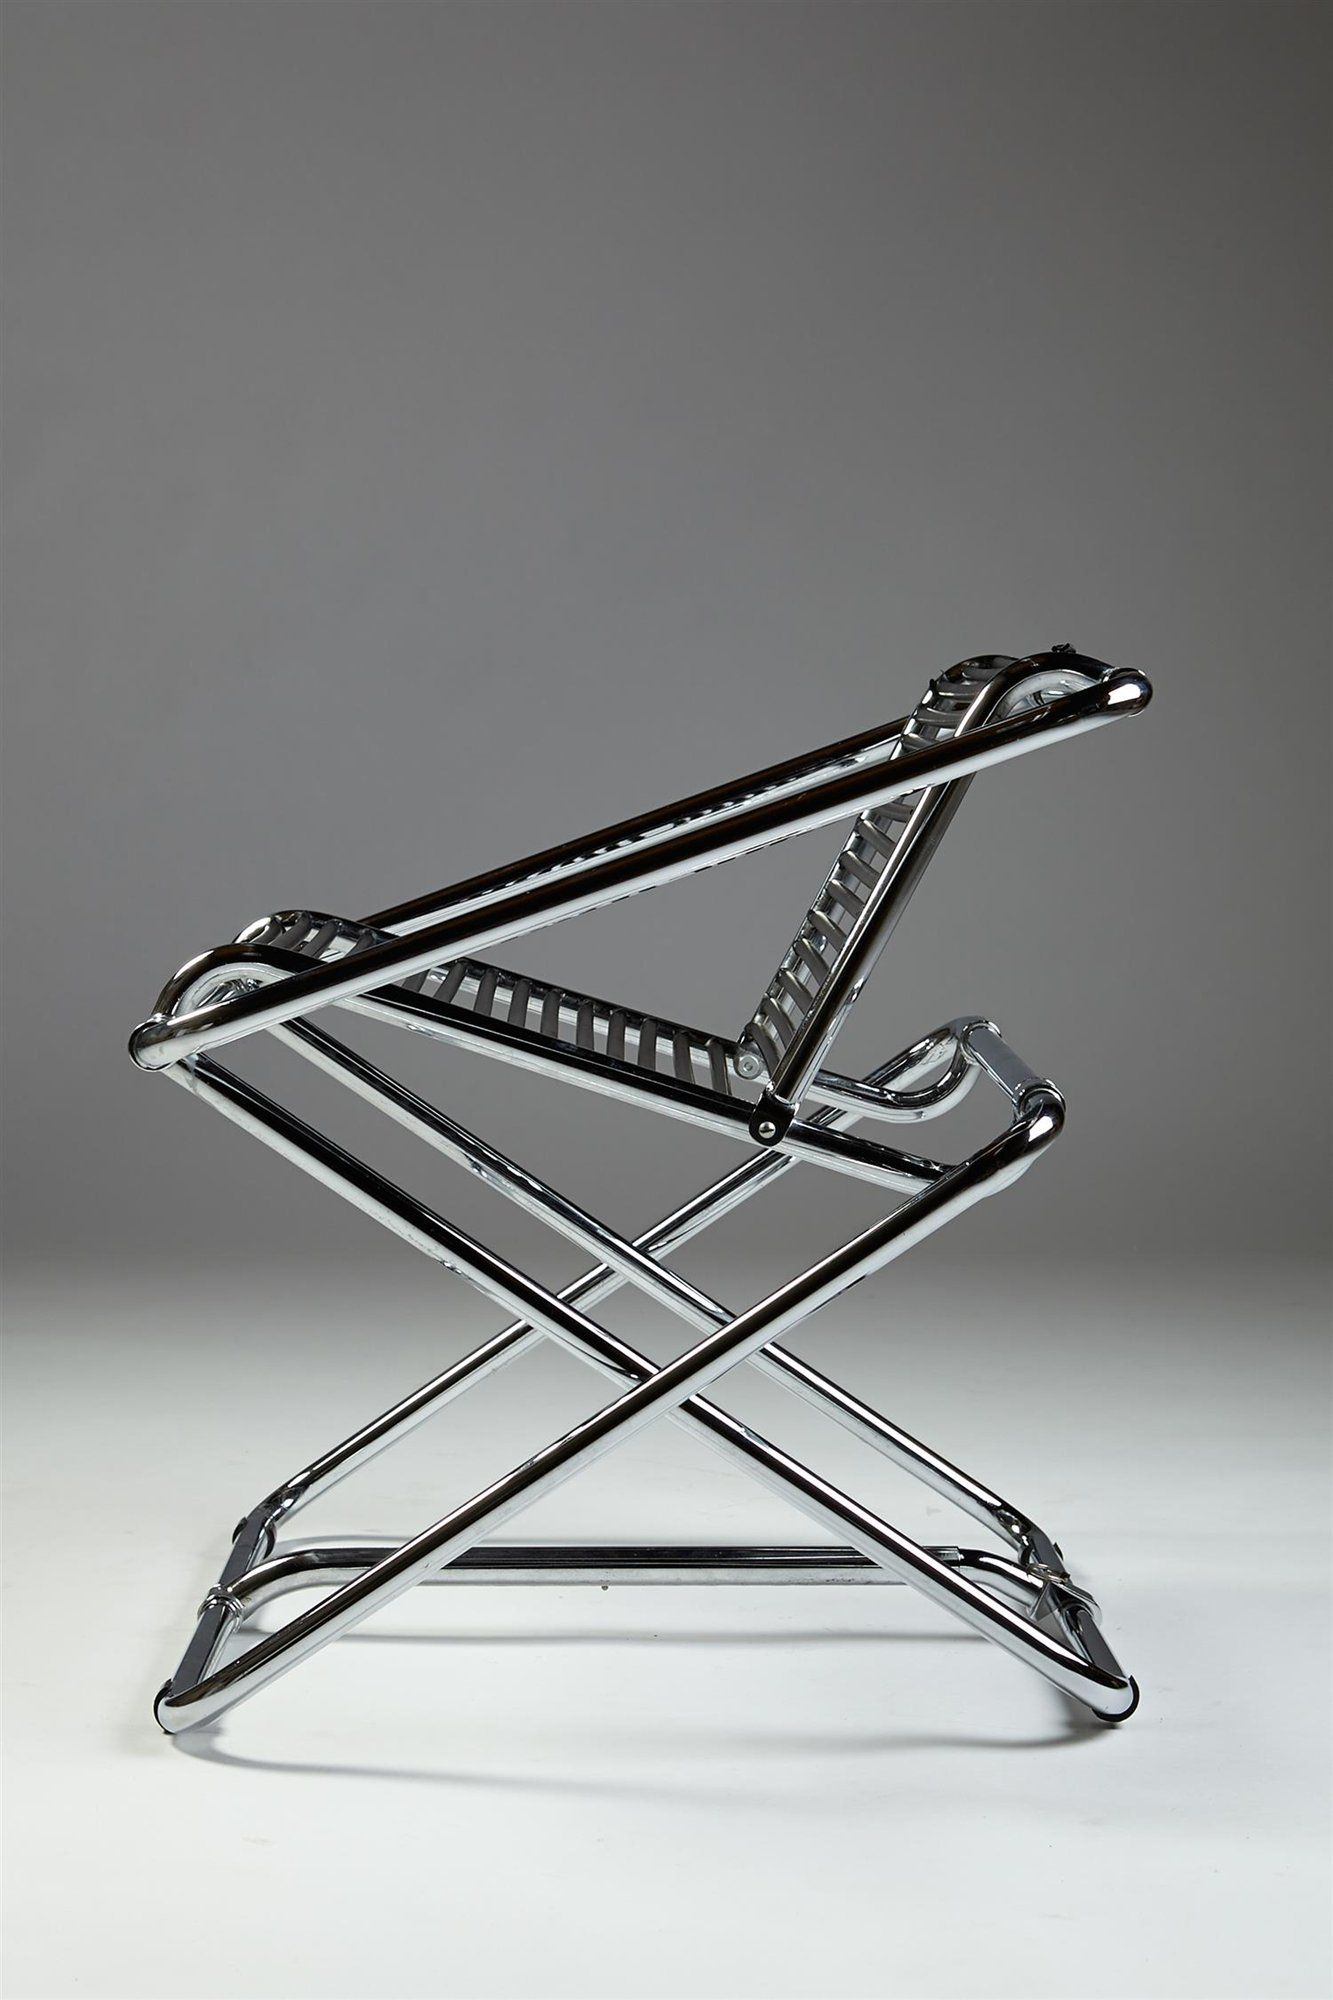 Rocking chair, designed by Ron Arad for One Off, England. 1980's. — Modernity